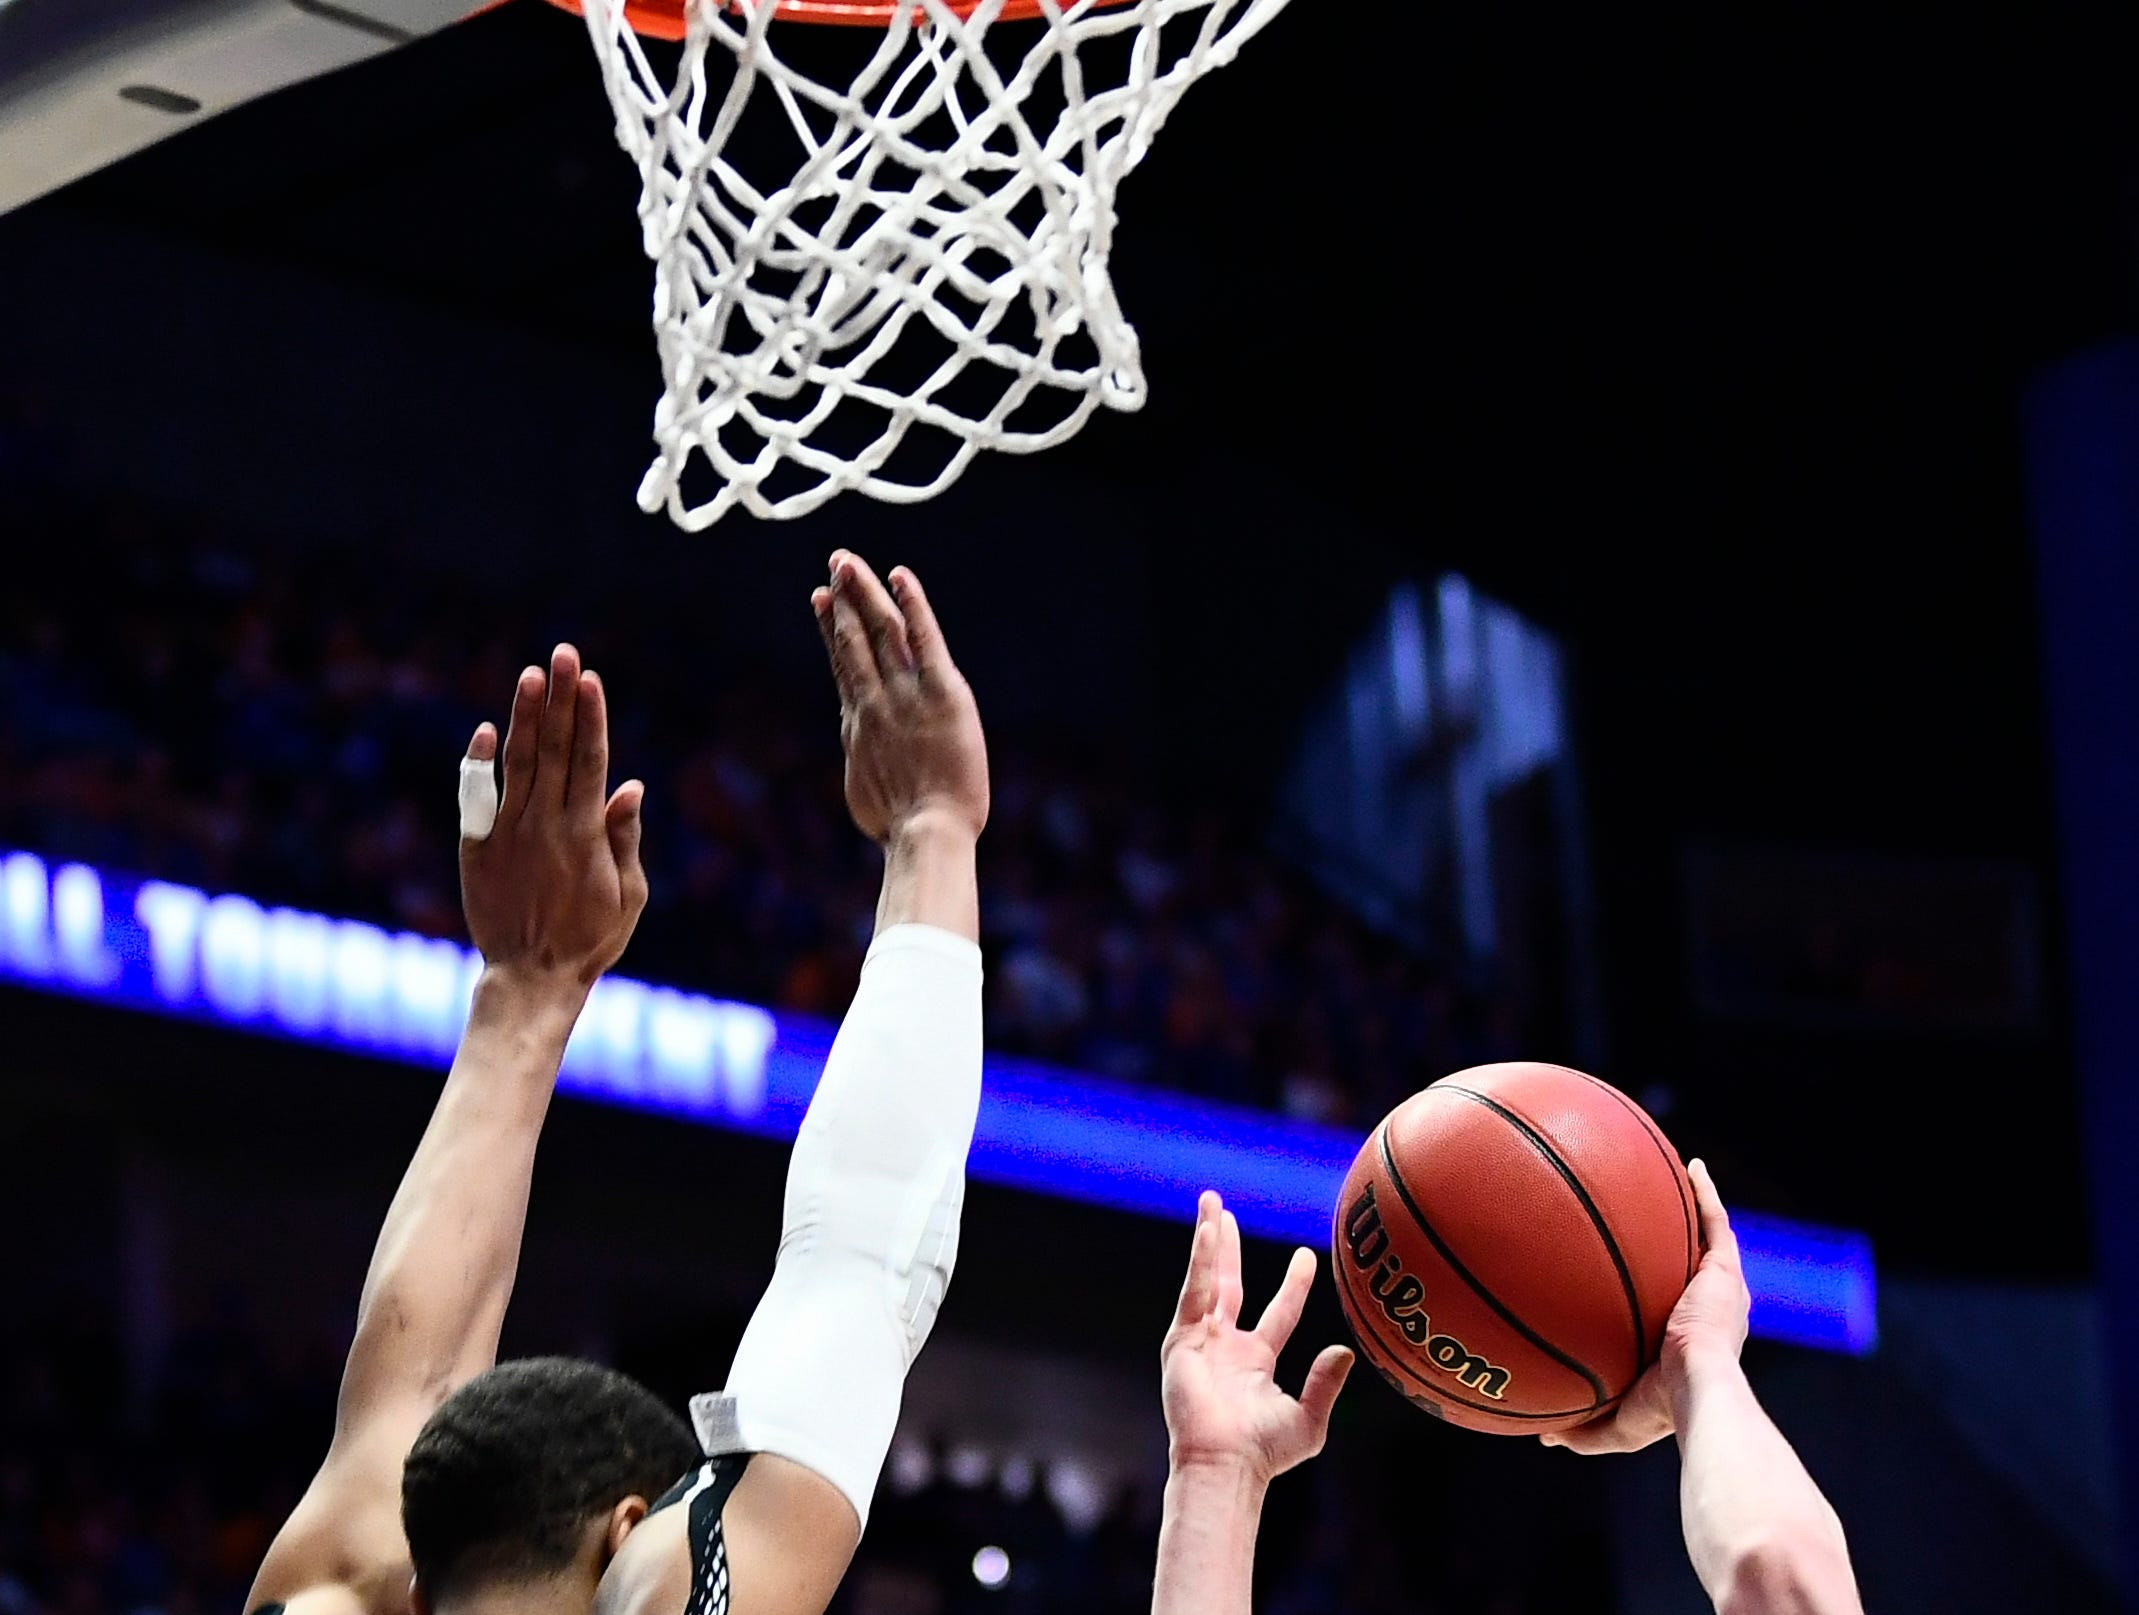 Tennessee forward John Fulkerson (10) shoots over Kentucky forward PJ Washington (25) during the second half of the SEC Men's Basketball Tournament semifinal game at Bridgestone Arena in Nashville, Tenn., Saturday, March 16, 2019.